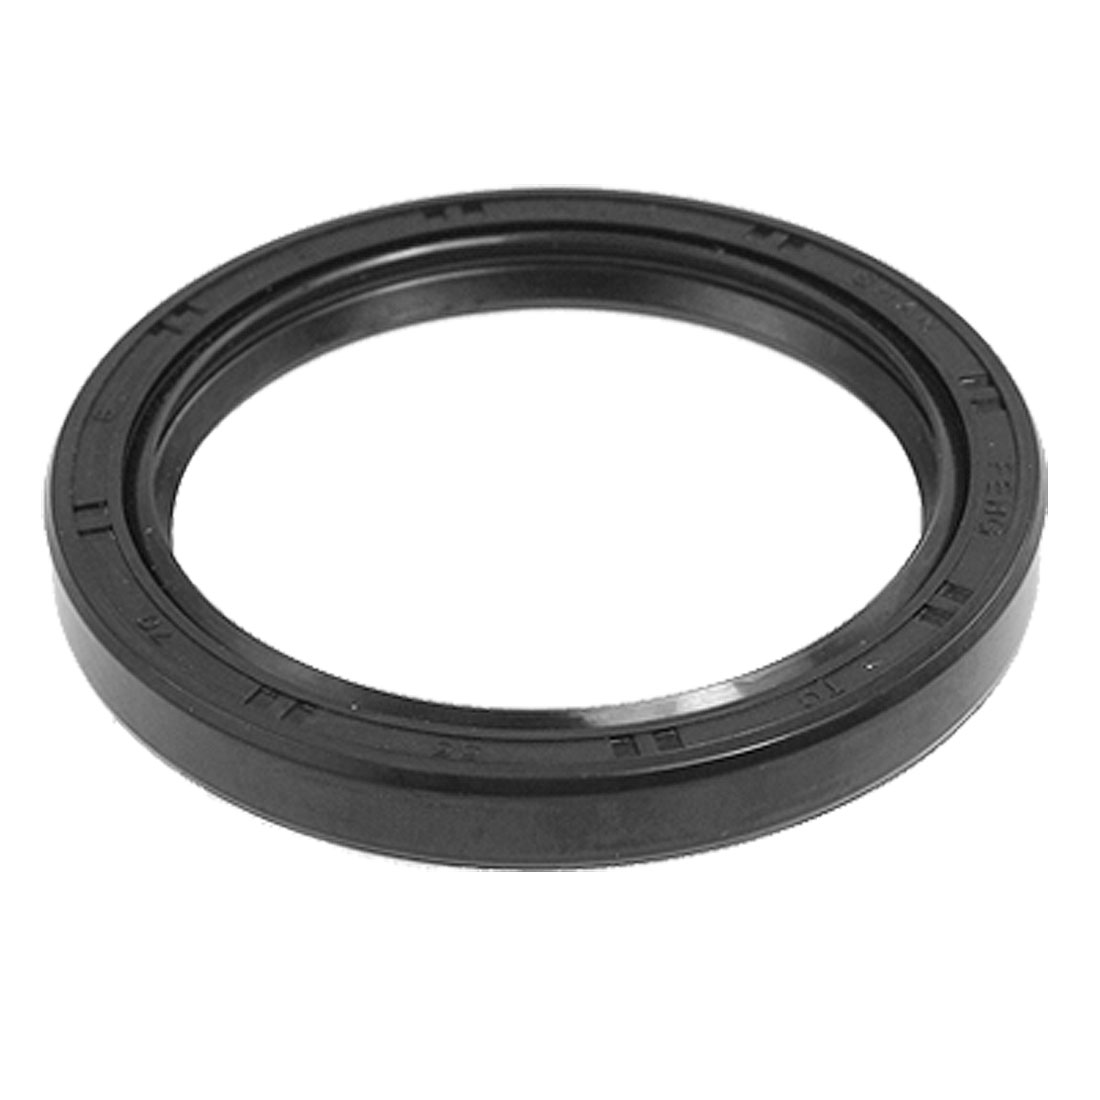 Steel Spring Double Lip Rubber TC Oil Shaft Seal 55mm x 70mm x 8mm